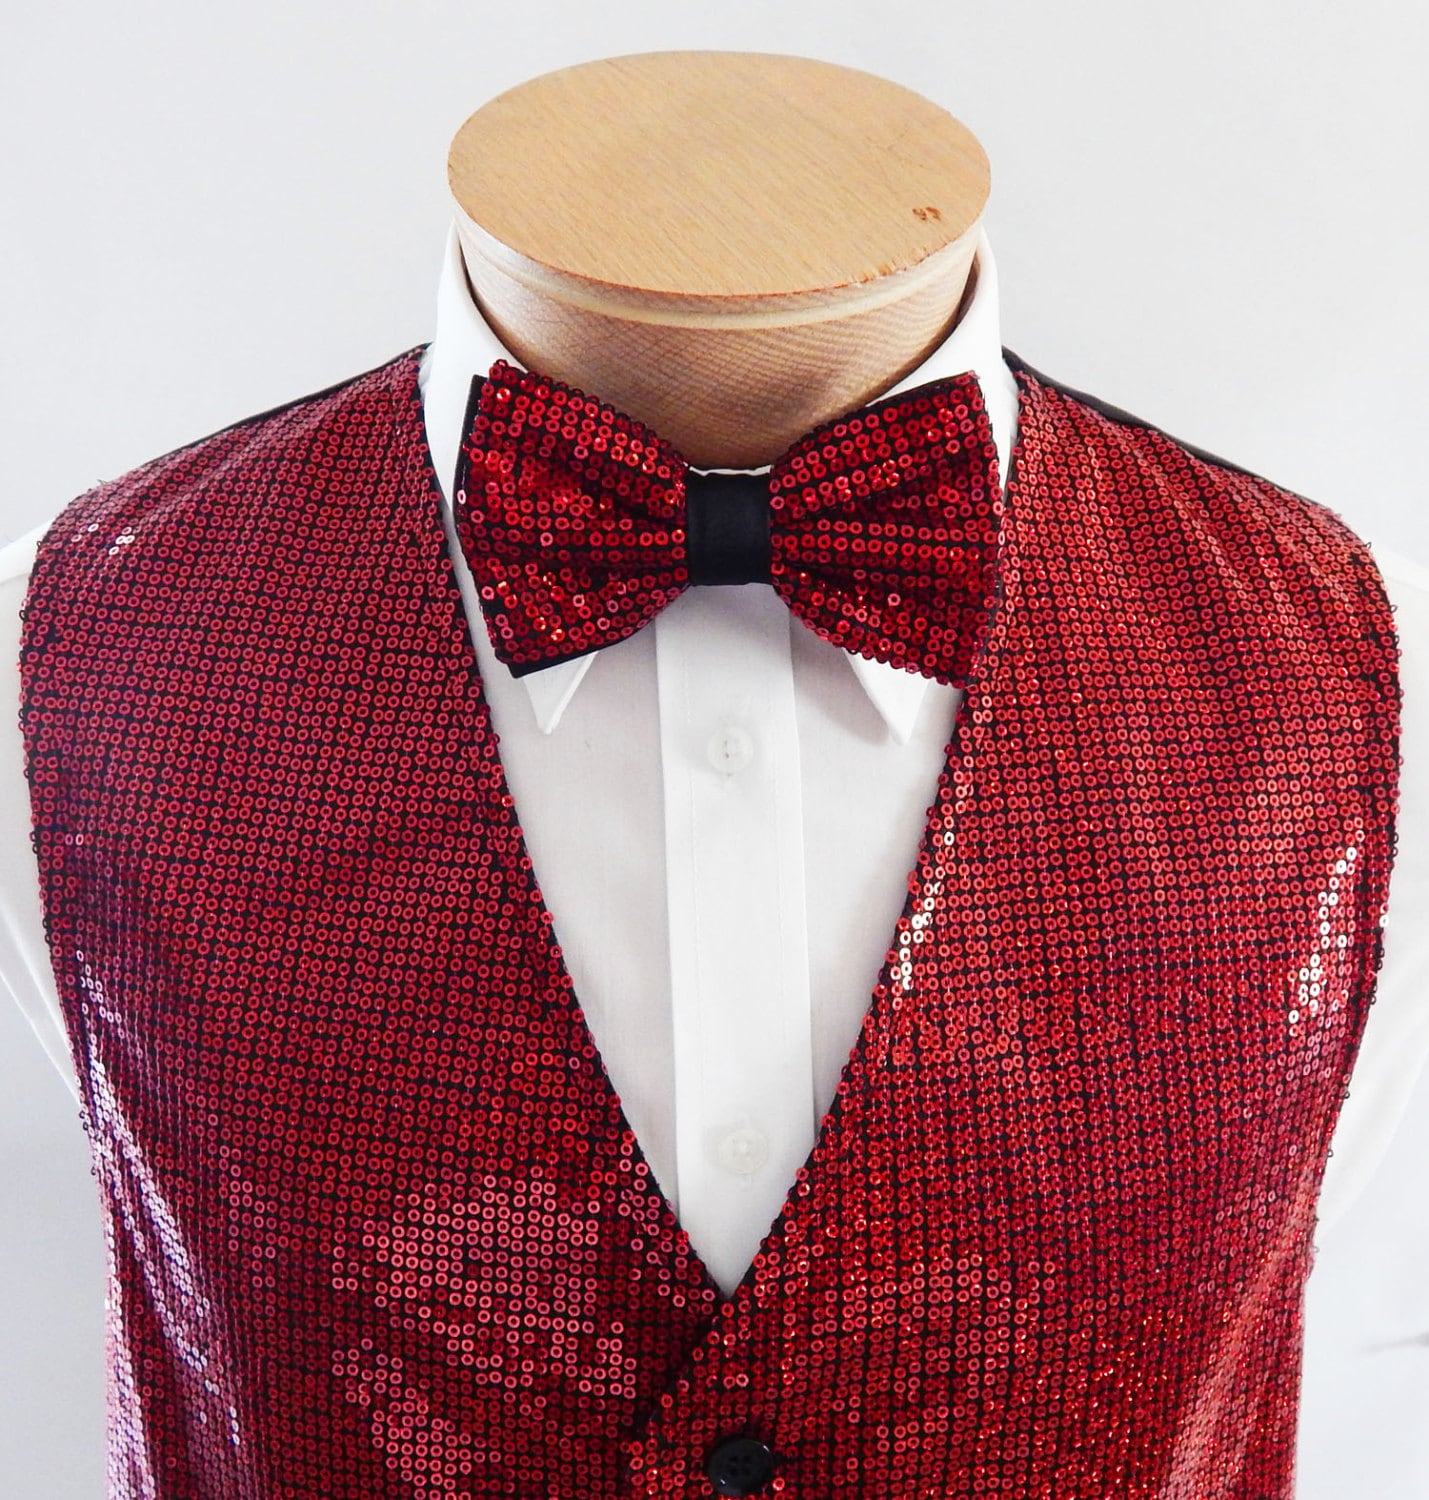 Vest and Tie Sets for all of your Formal Occasions.